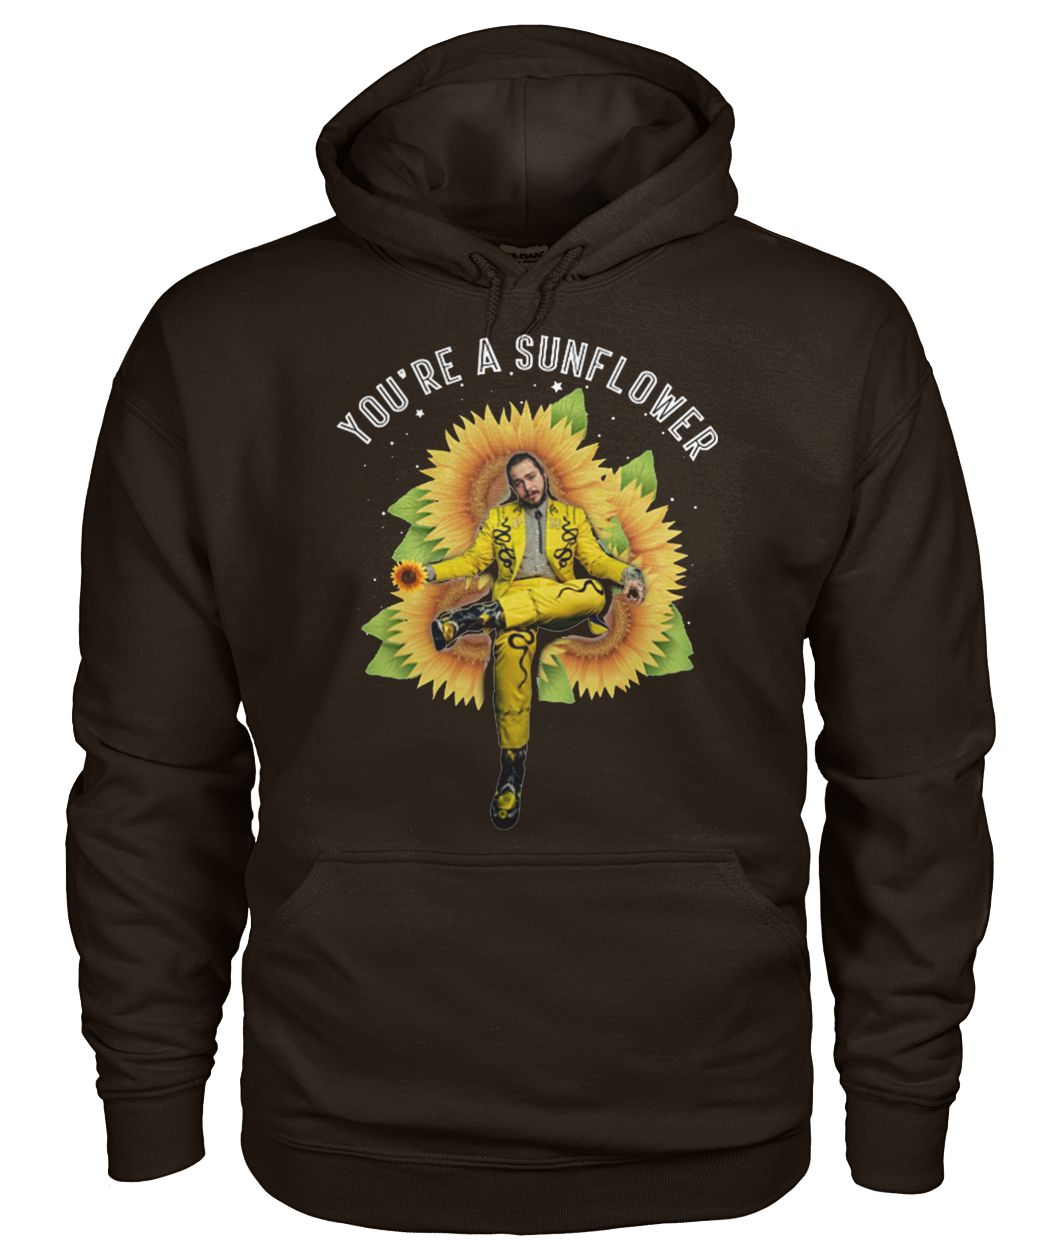 Post Malone you're a sunflower gildan hoodie